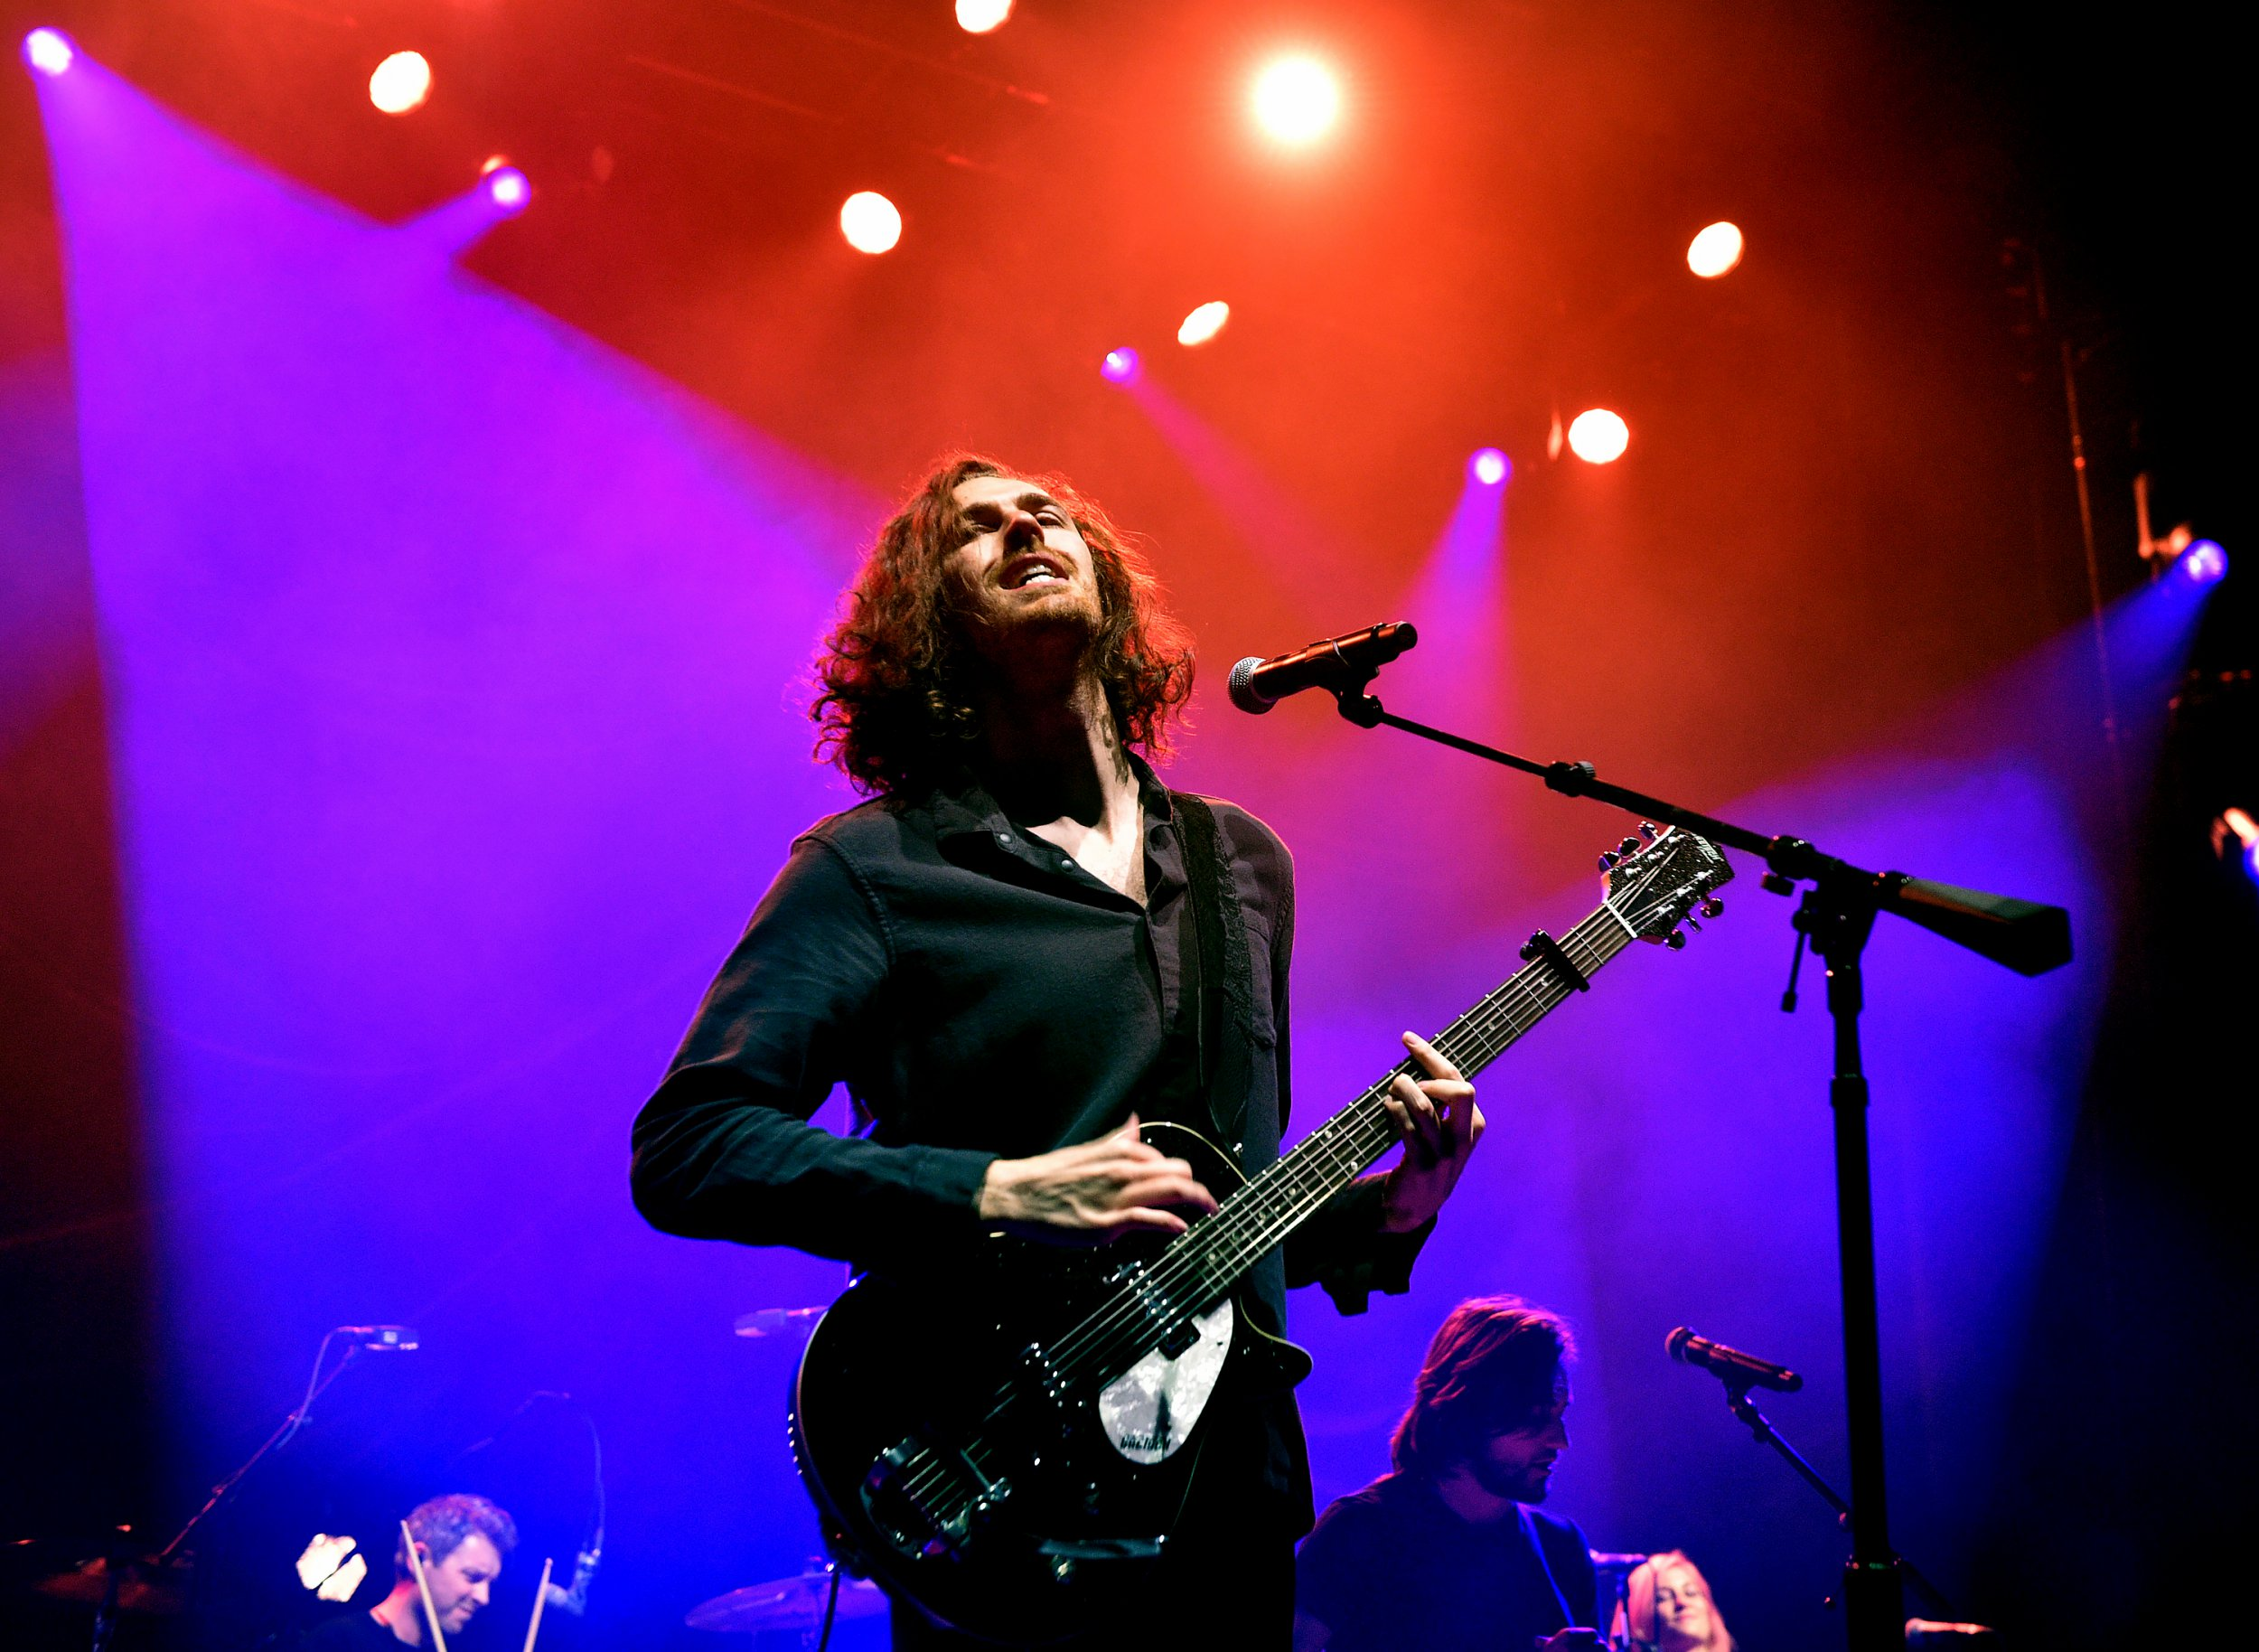 MANCHESTER, ENGLAND - DECEMBER 06: Hozier performs at O2 Apollo Manchester on December 06, 2018 in Manchester, England. (Photo by Shirlaine Forrest/WireImage)